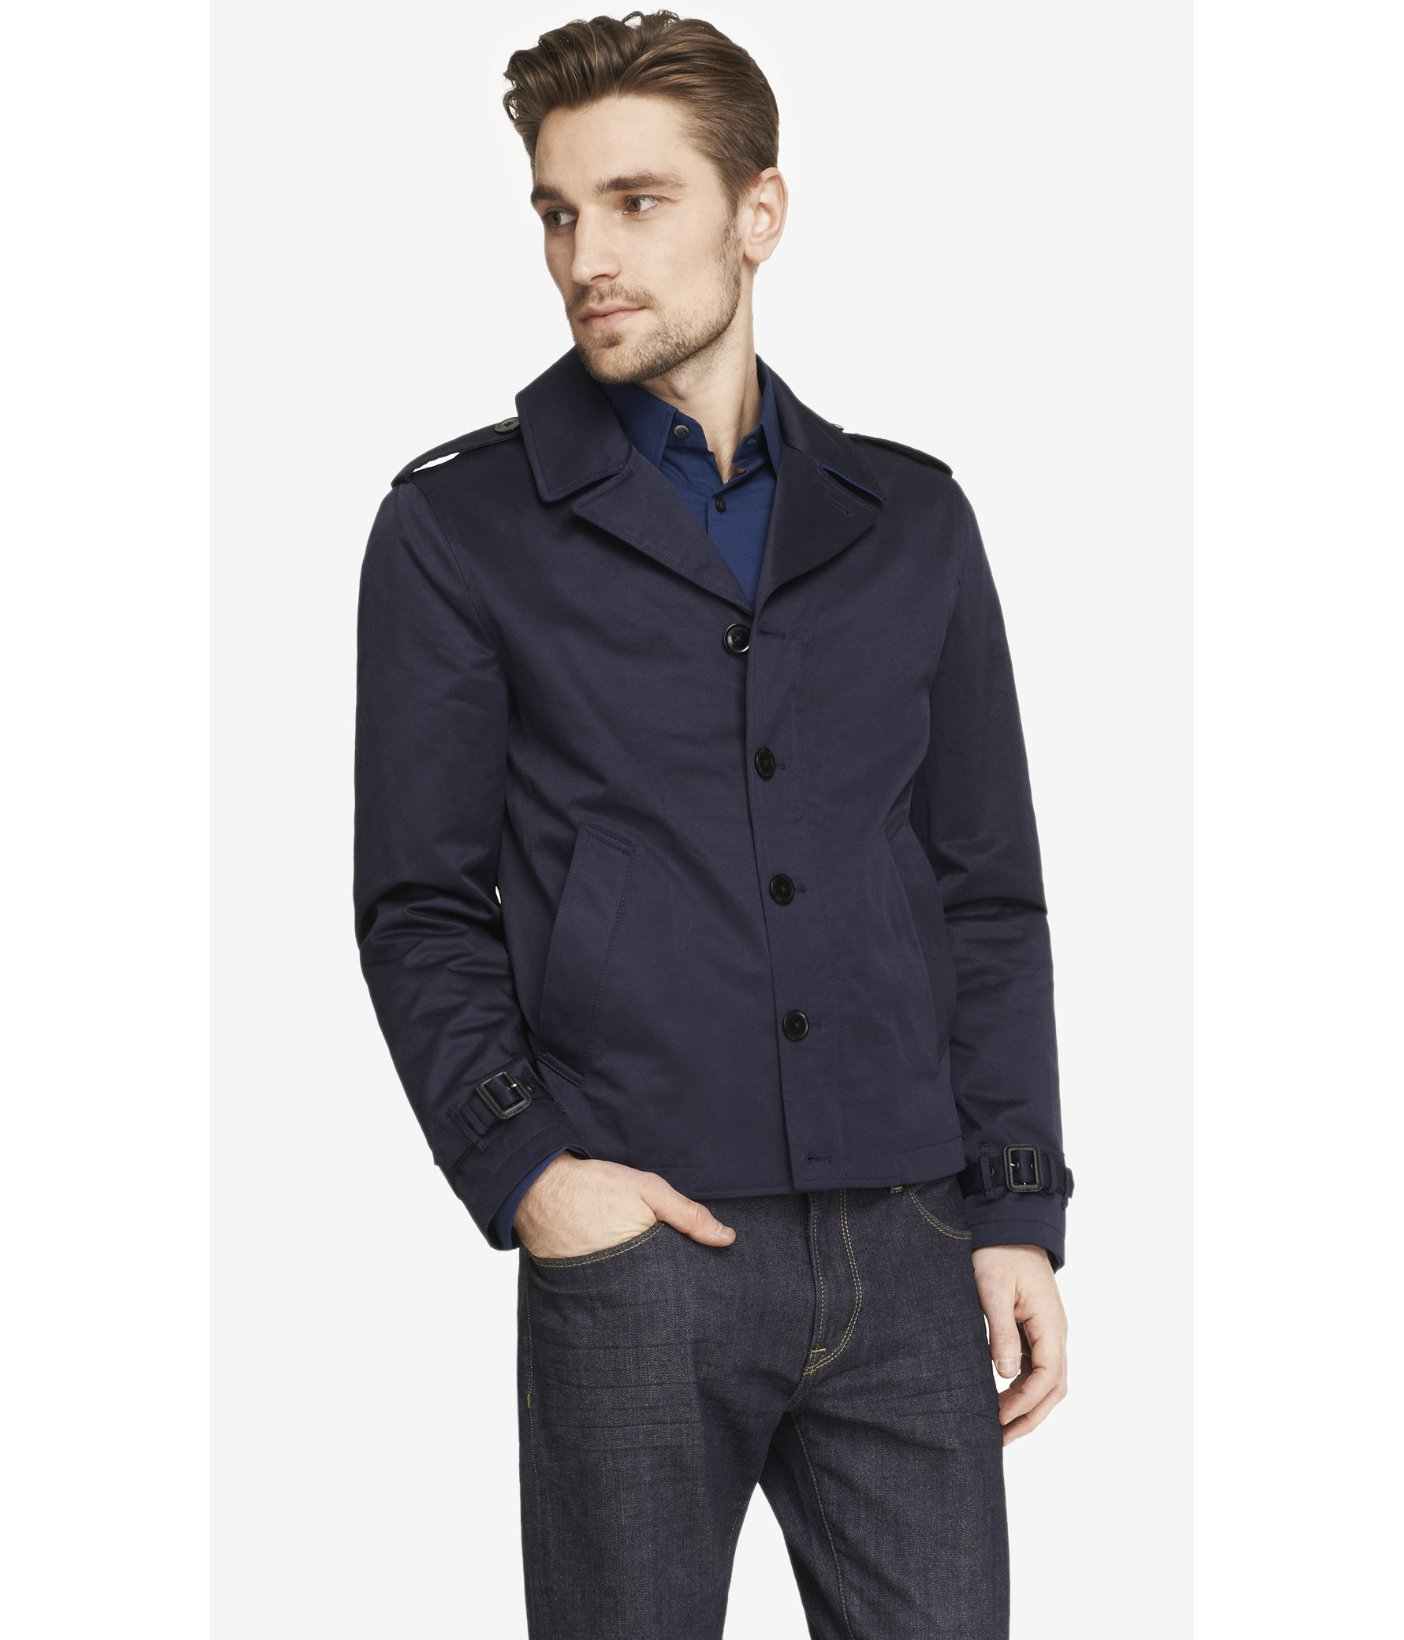 Cropped Trench Coat Men - Tradingbasis